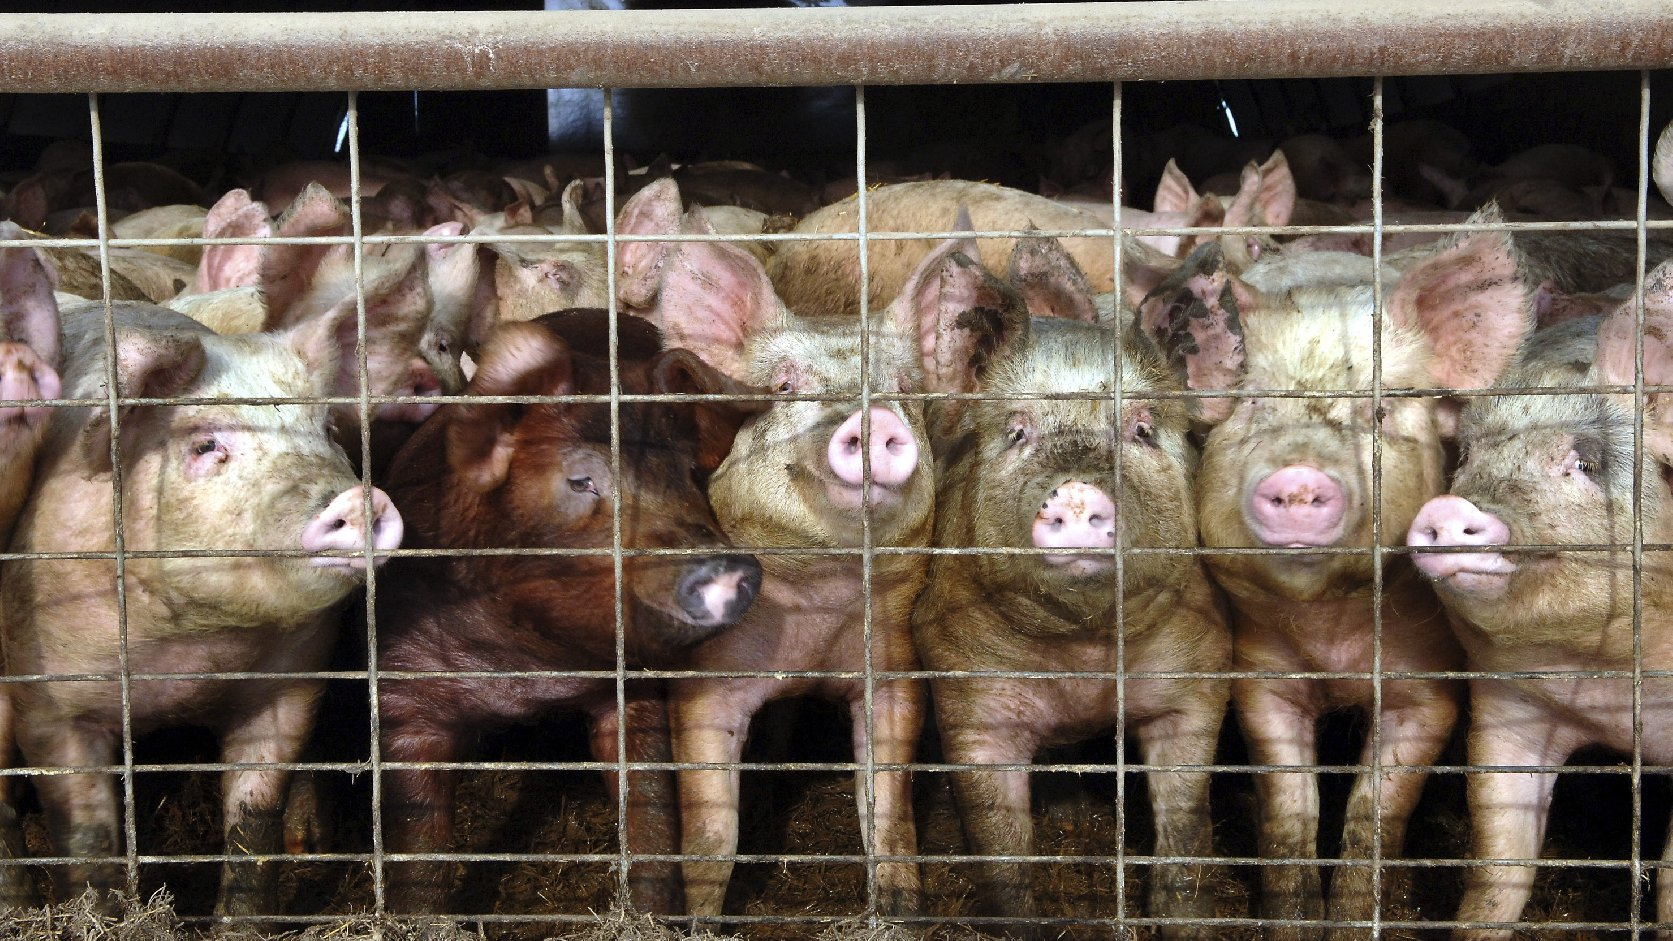 France has banned imports of live pigs and other products from the U.S. to keep out a virus that has killed more than 4 million pigs in the U.S. Here, young pigs look out of a pen at a North Dakota hog farm in a 2005 file photo. Photo: Will Kincaid/AP